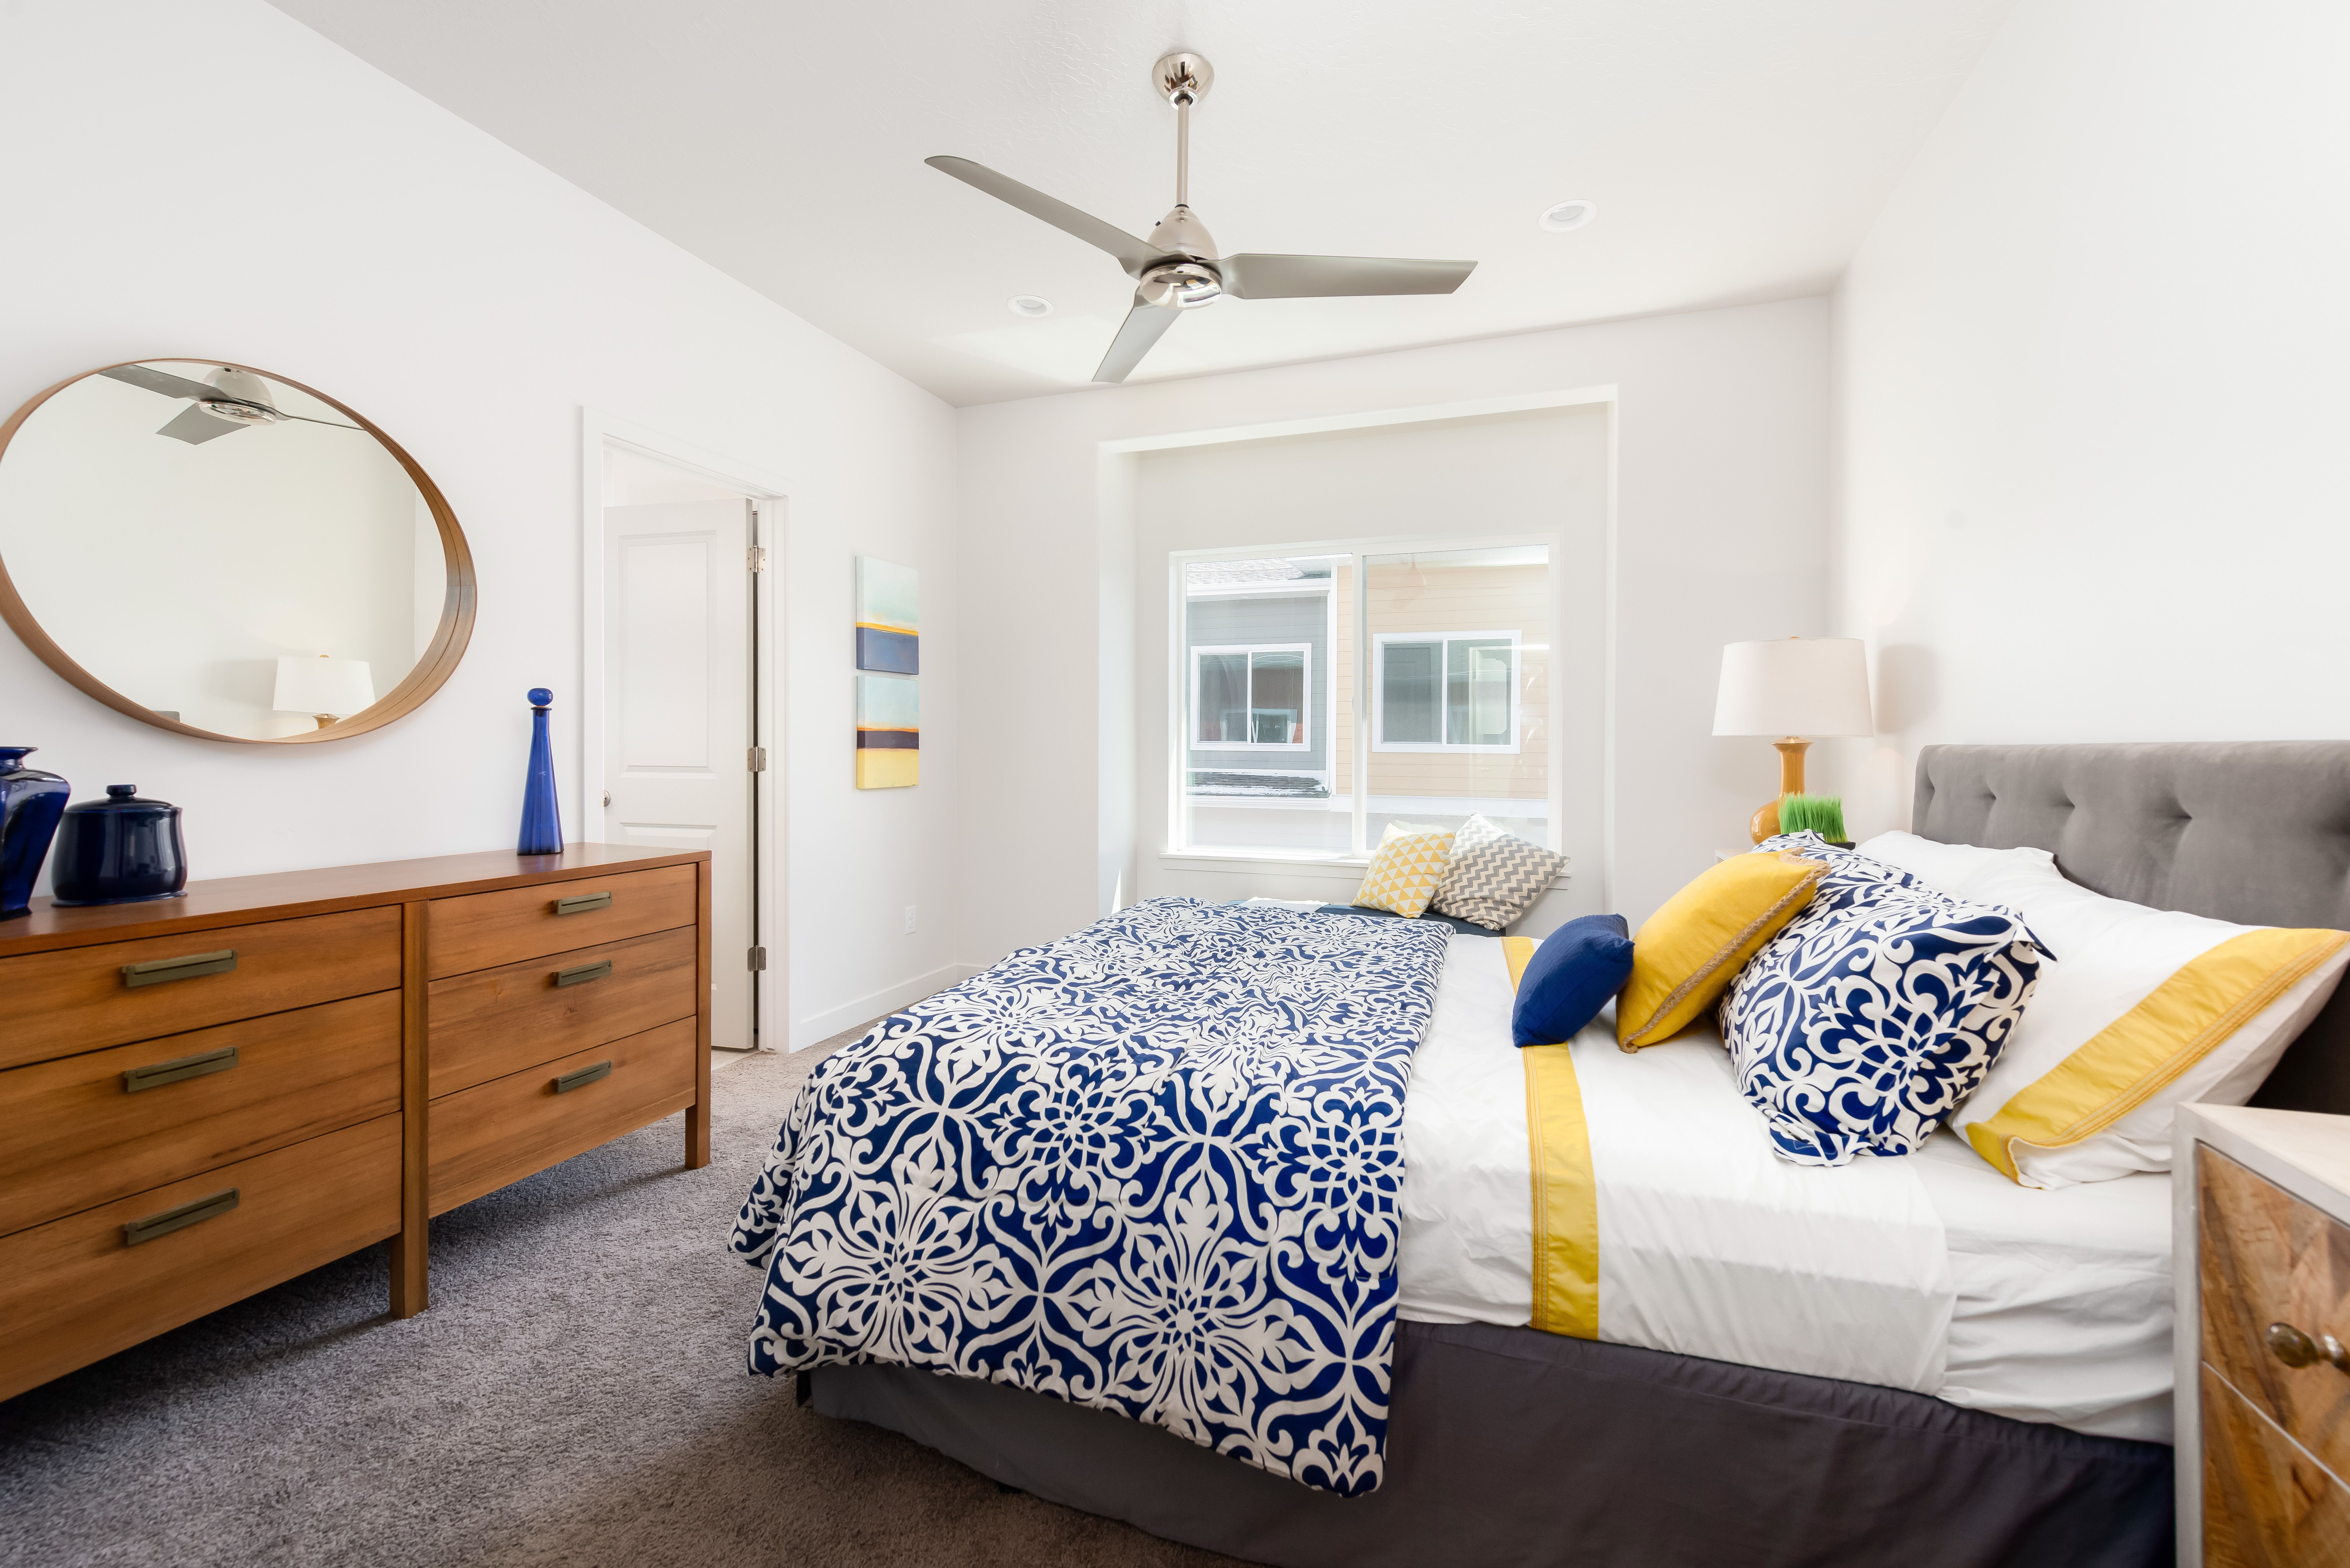 How would you rate this colorful décor scheme from 110